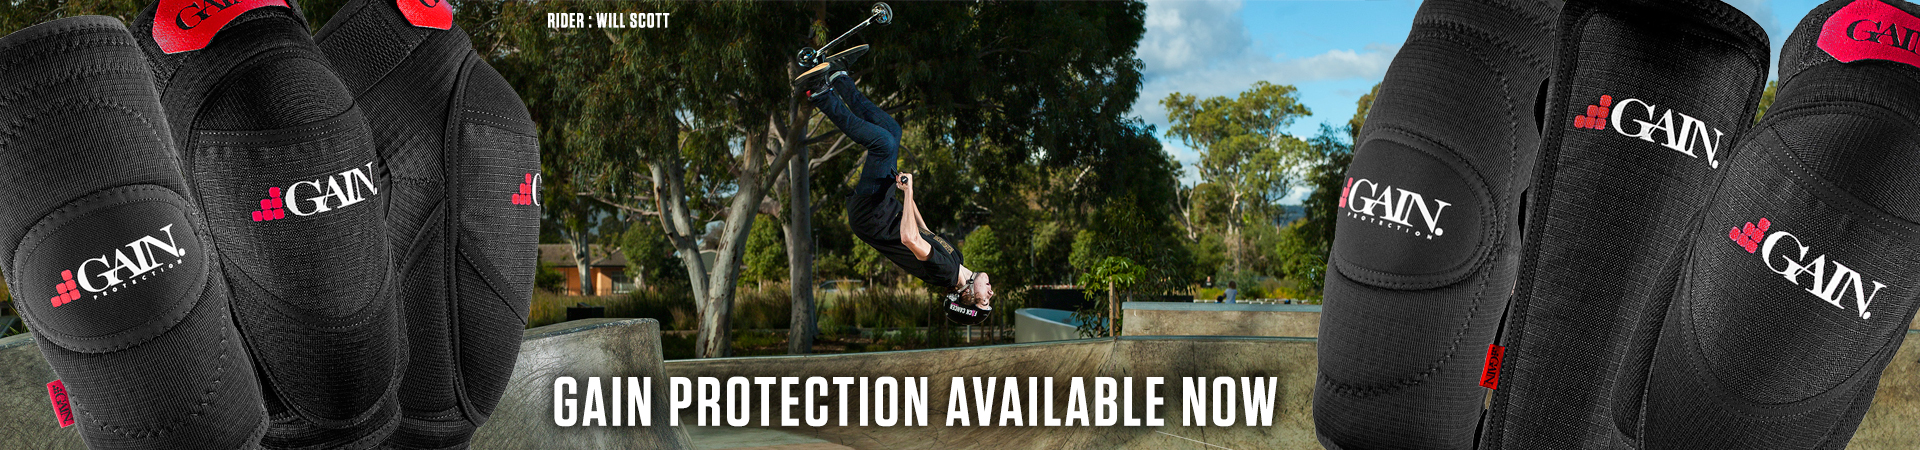 Gain Protection available at Scooter Hut